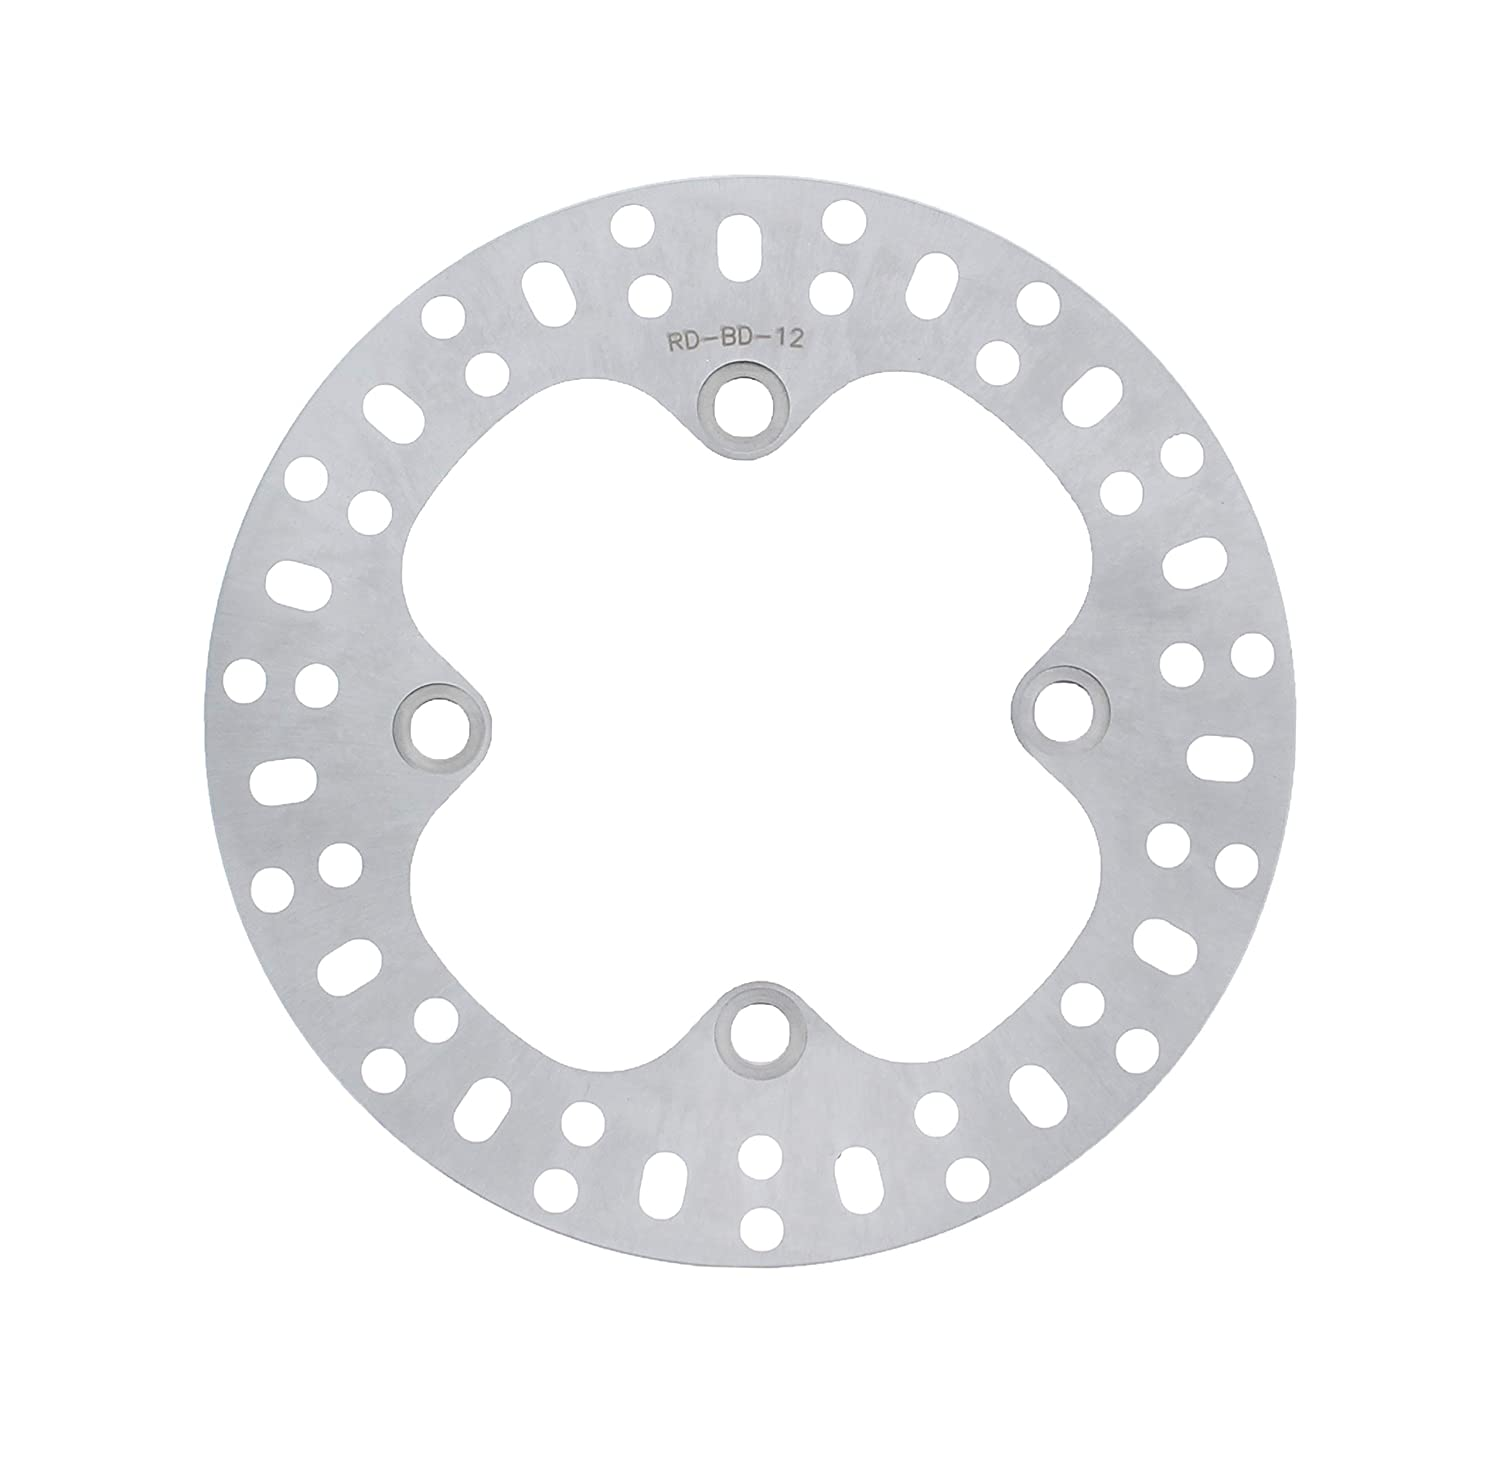 Brake Rotors Discs fits Yamaha YFM700 700 Grizzly 2007-2019 Rear 2 Sides Race-Driven